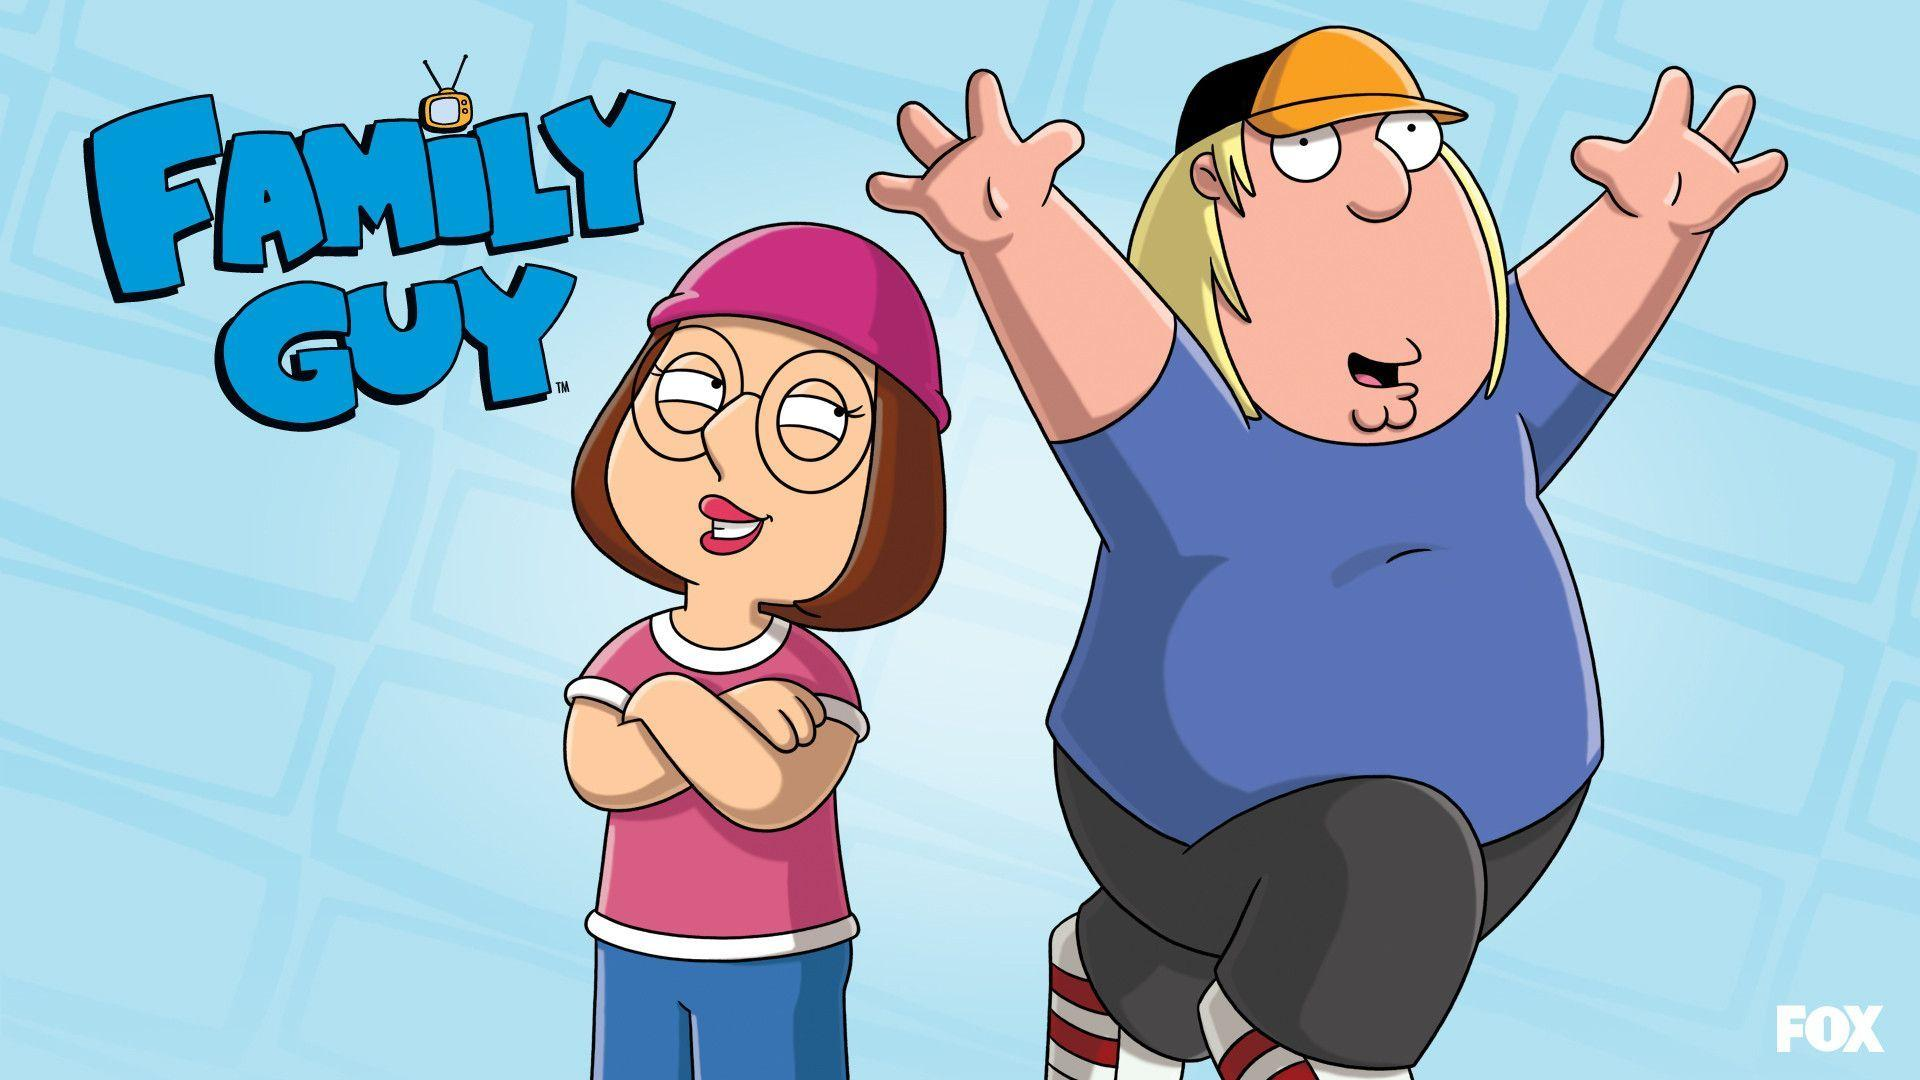 Family Guy Wallpapers - Wallpaper Cave